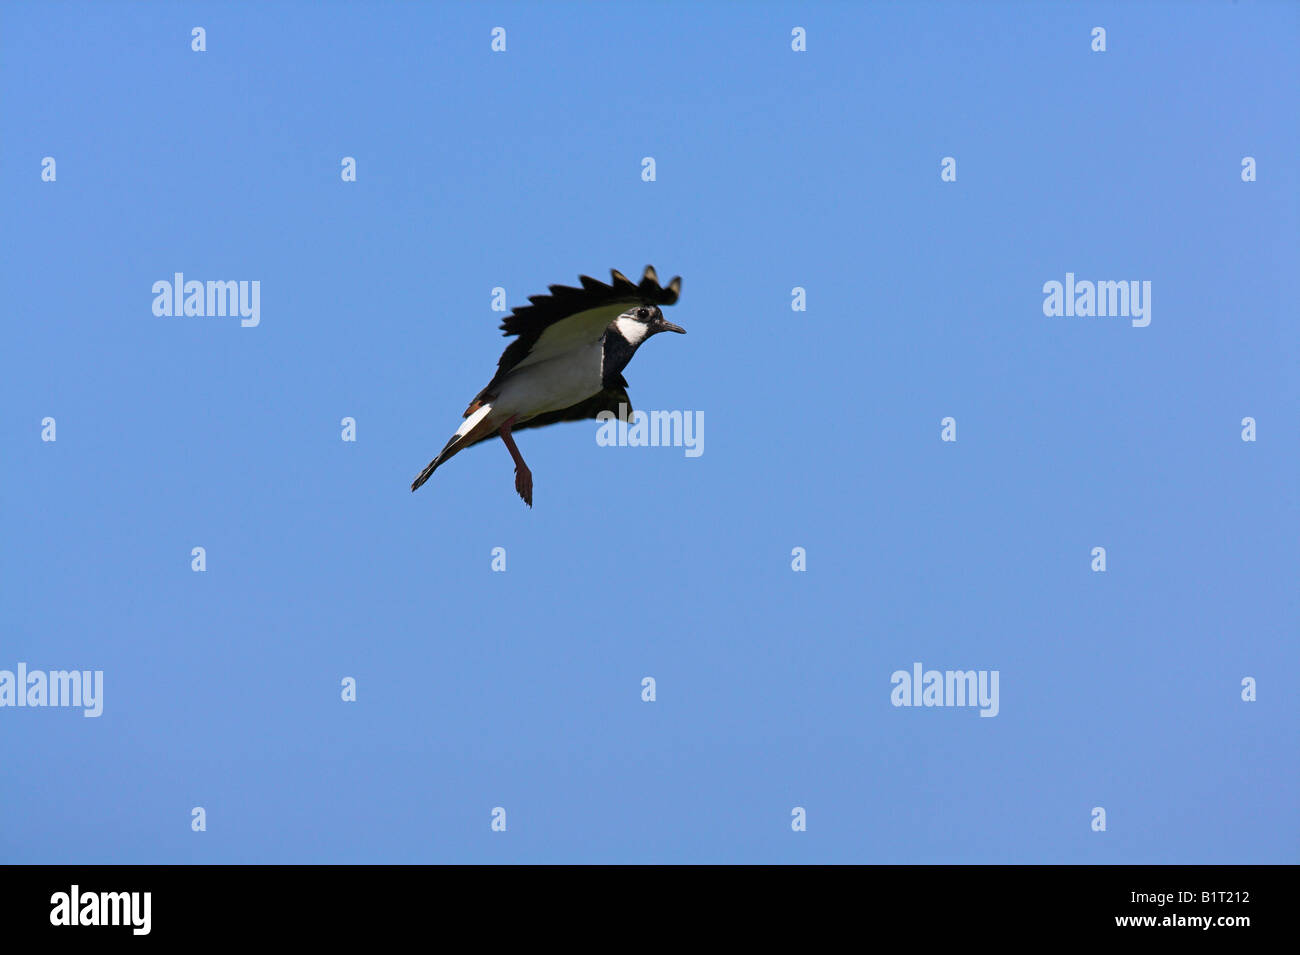 Lapwing Vanellus vanellus performing aerial display on North Uist, Scotland in May. - Stock Image